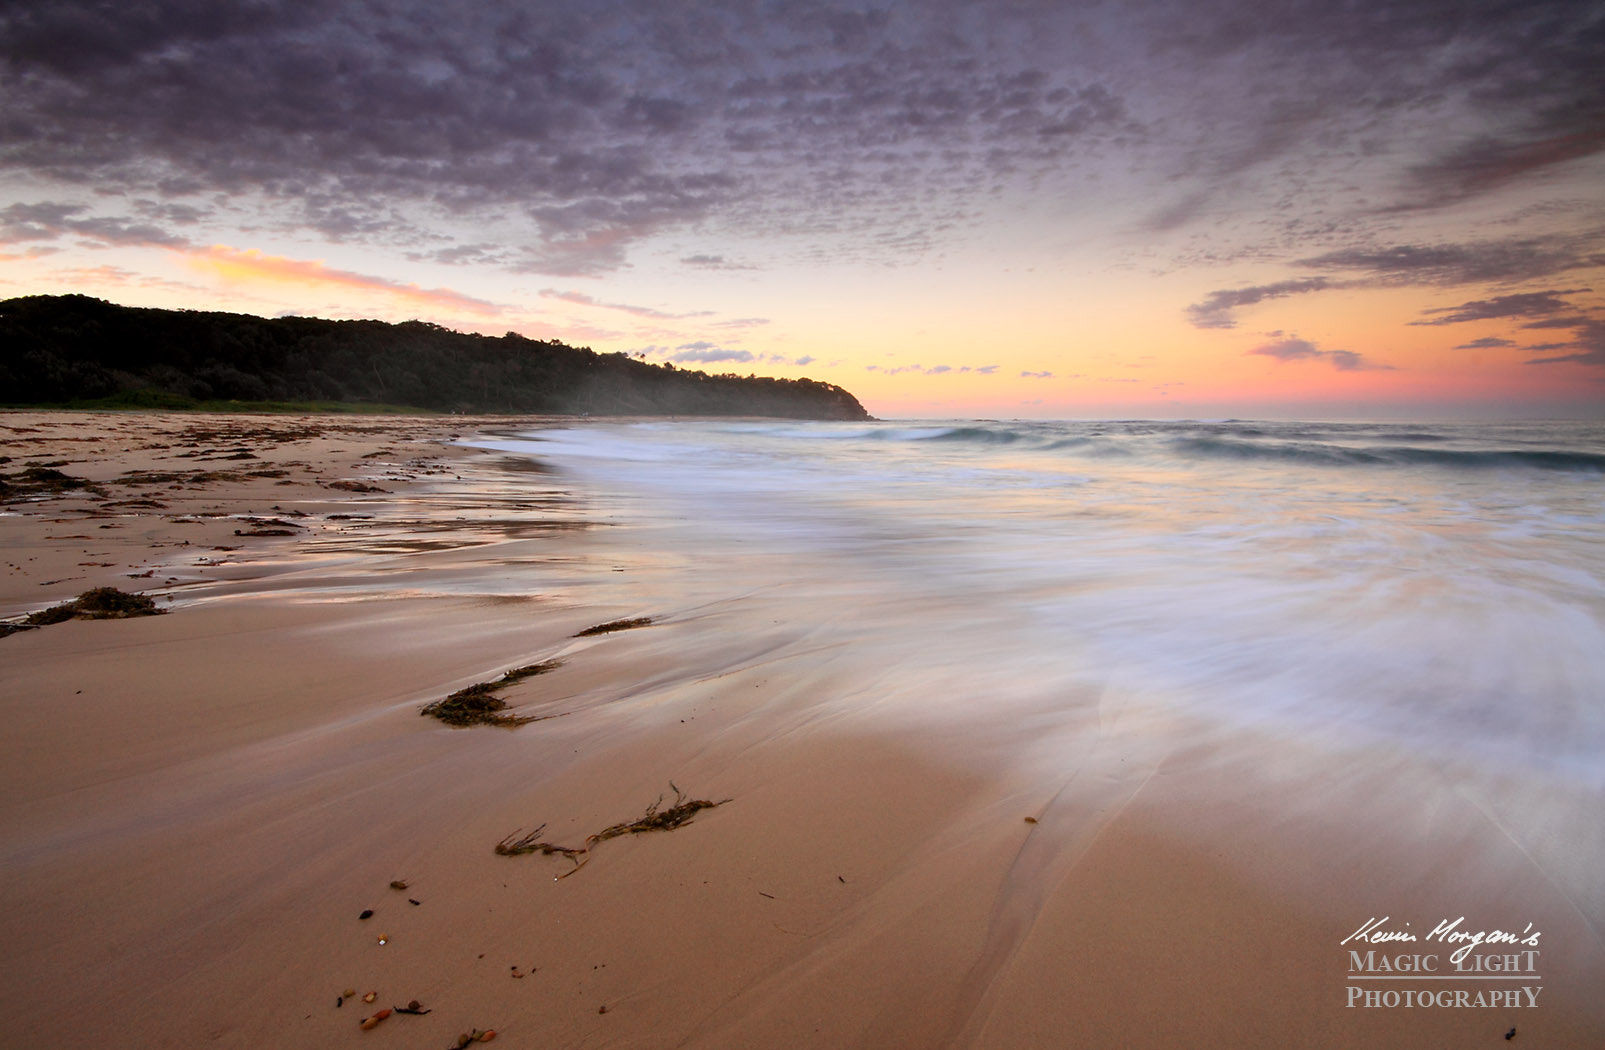 Photograph Bateau Bay Sunset by Kevin Morgan on 500px